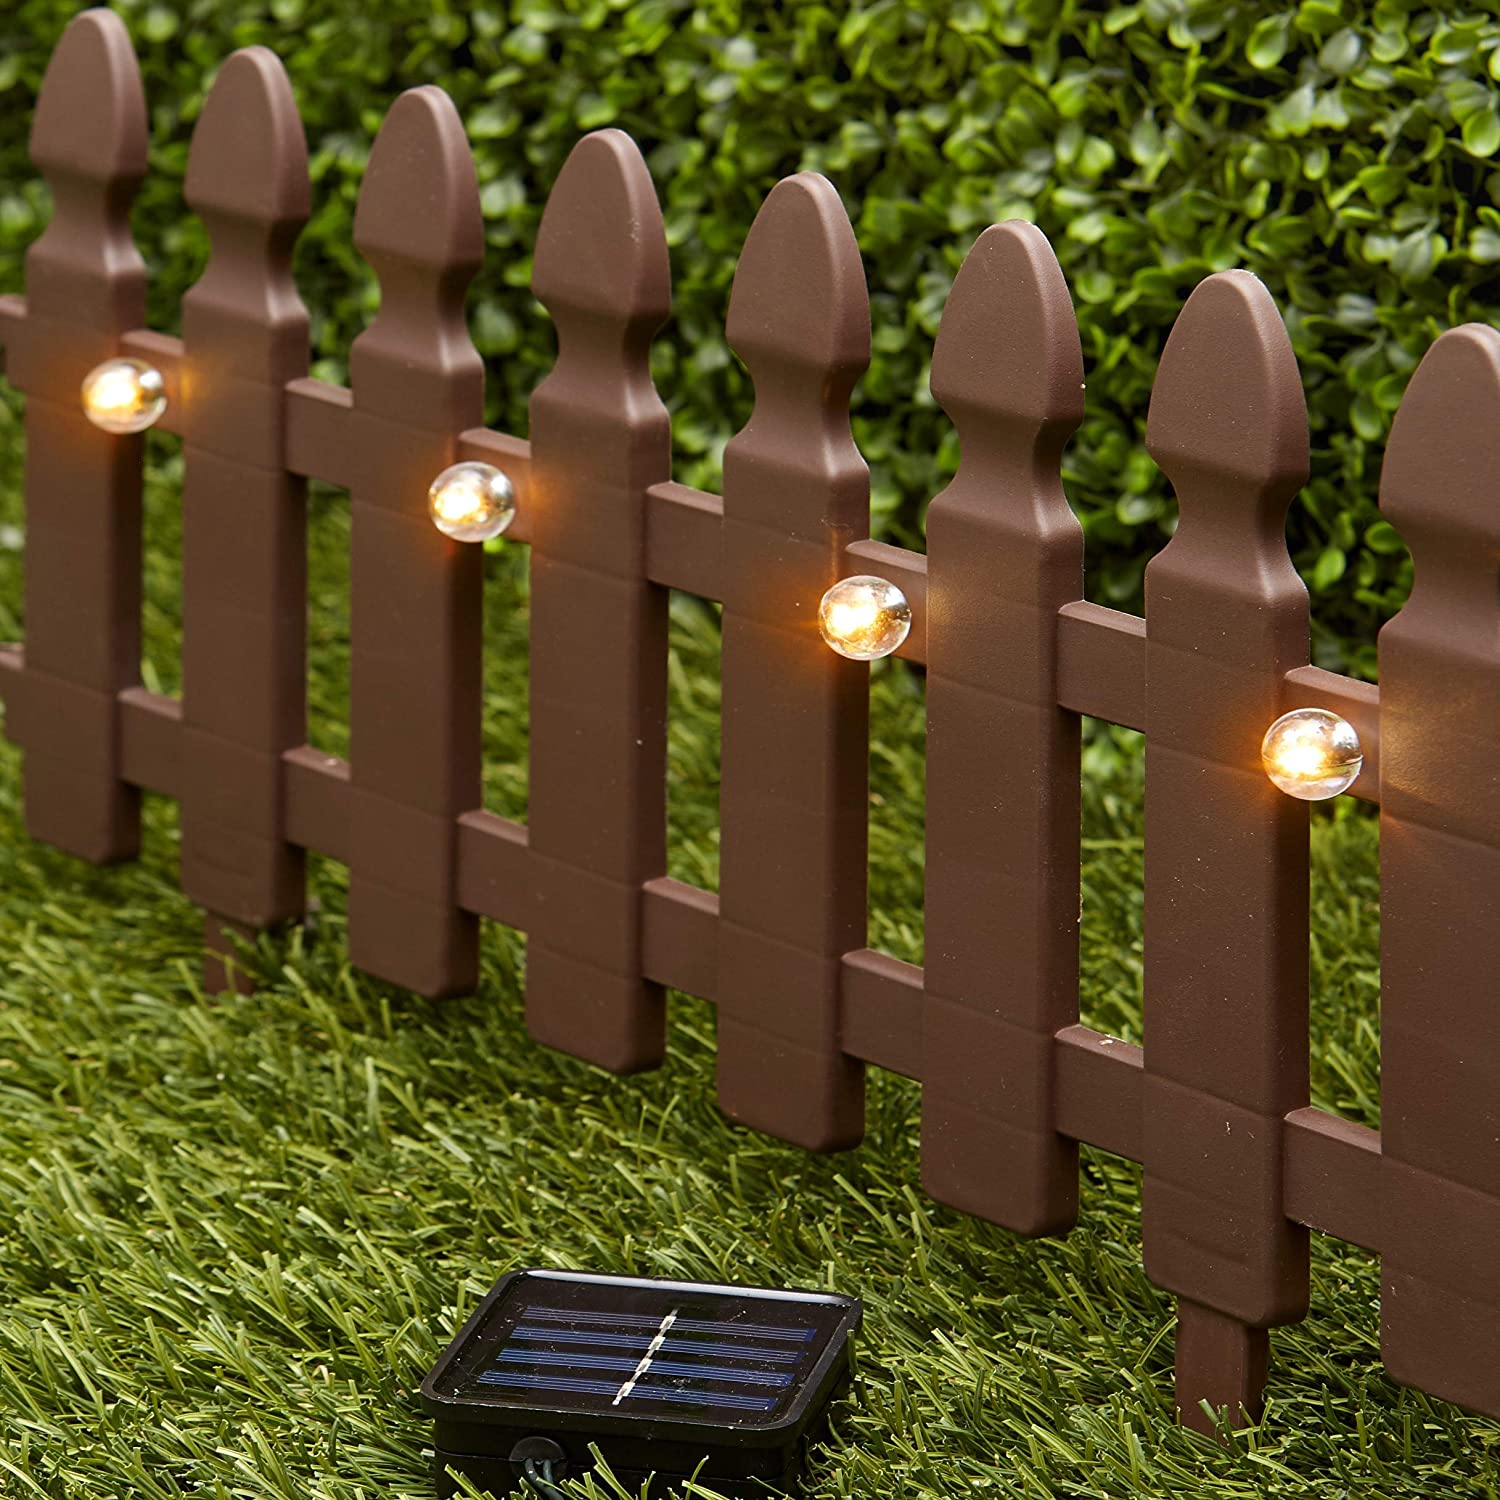 The Lakeside Collection 6-Ft. Solar Border Fence Panel - Garden Landscape Edging Stake - Brown